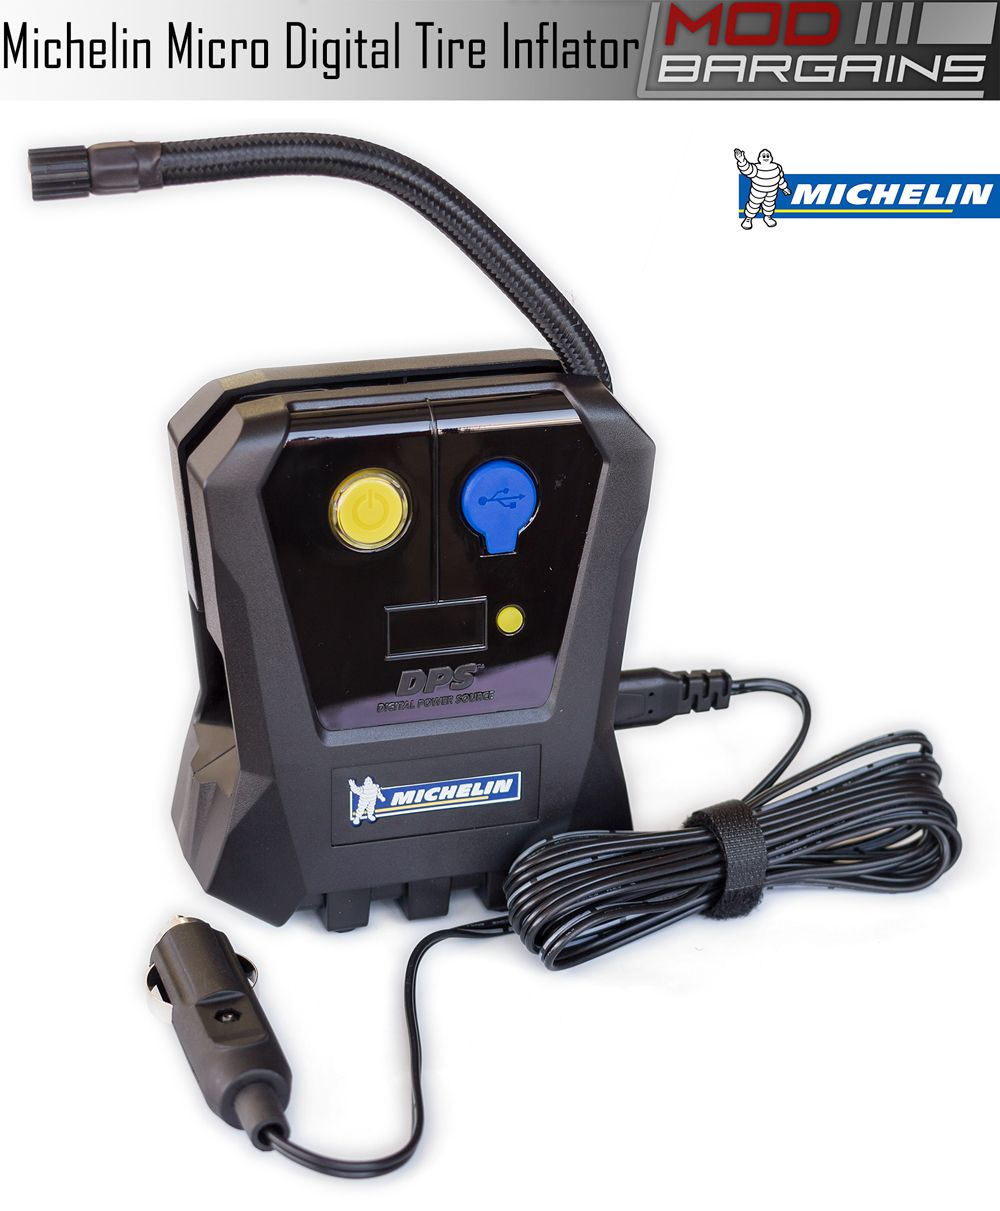 Michelin Micro 12 Volt Digital Tire Inflator with USB 5V Power Port 12264